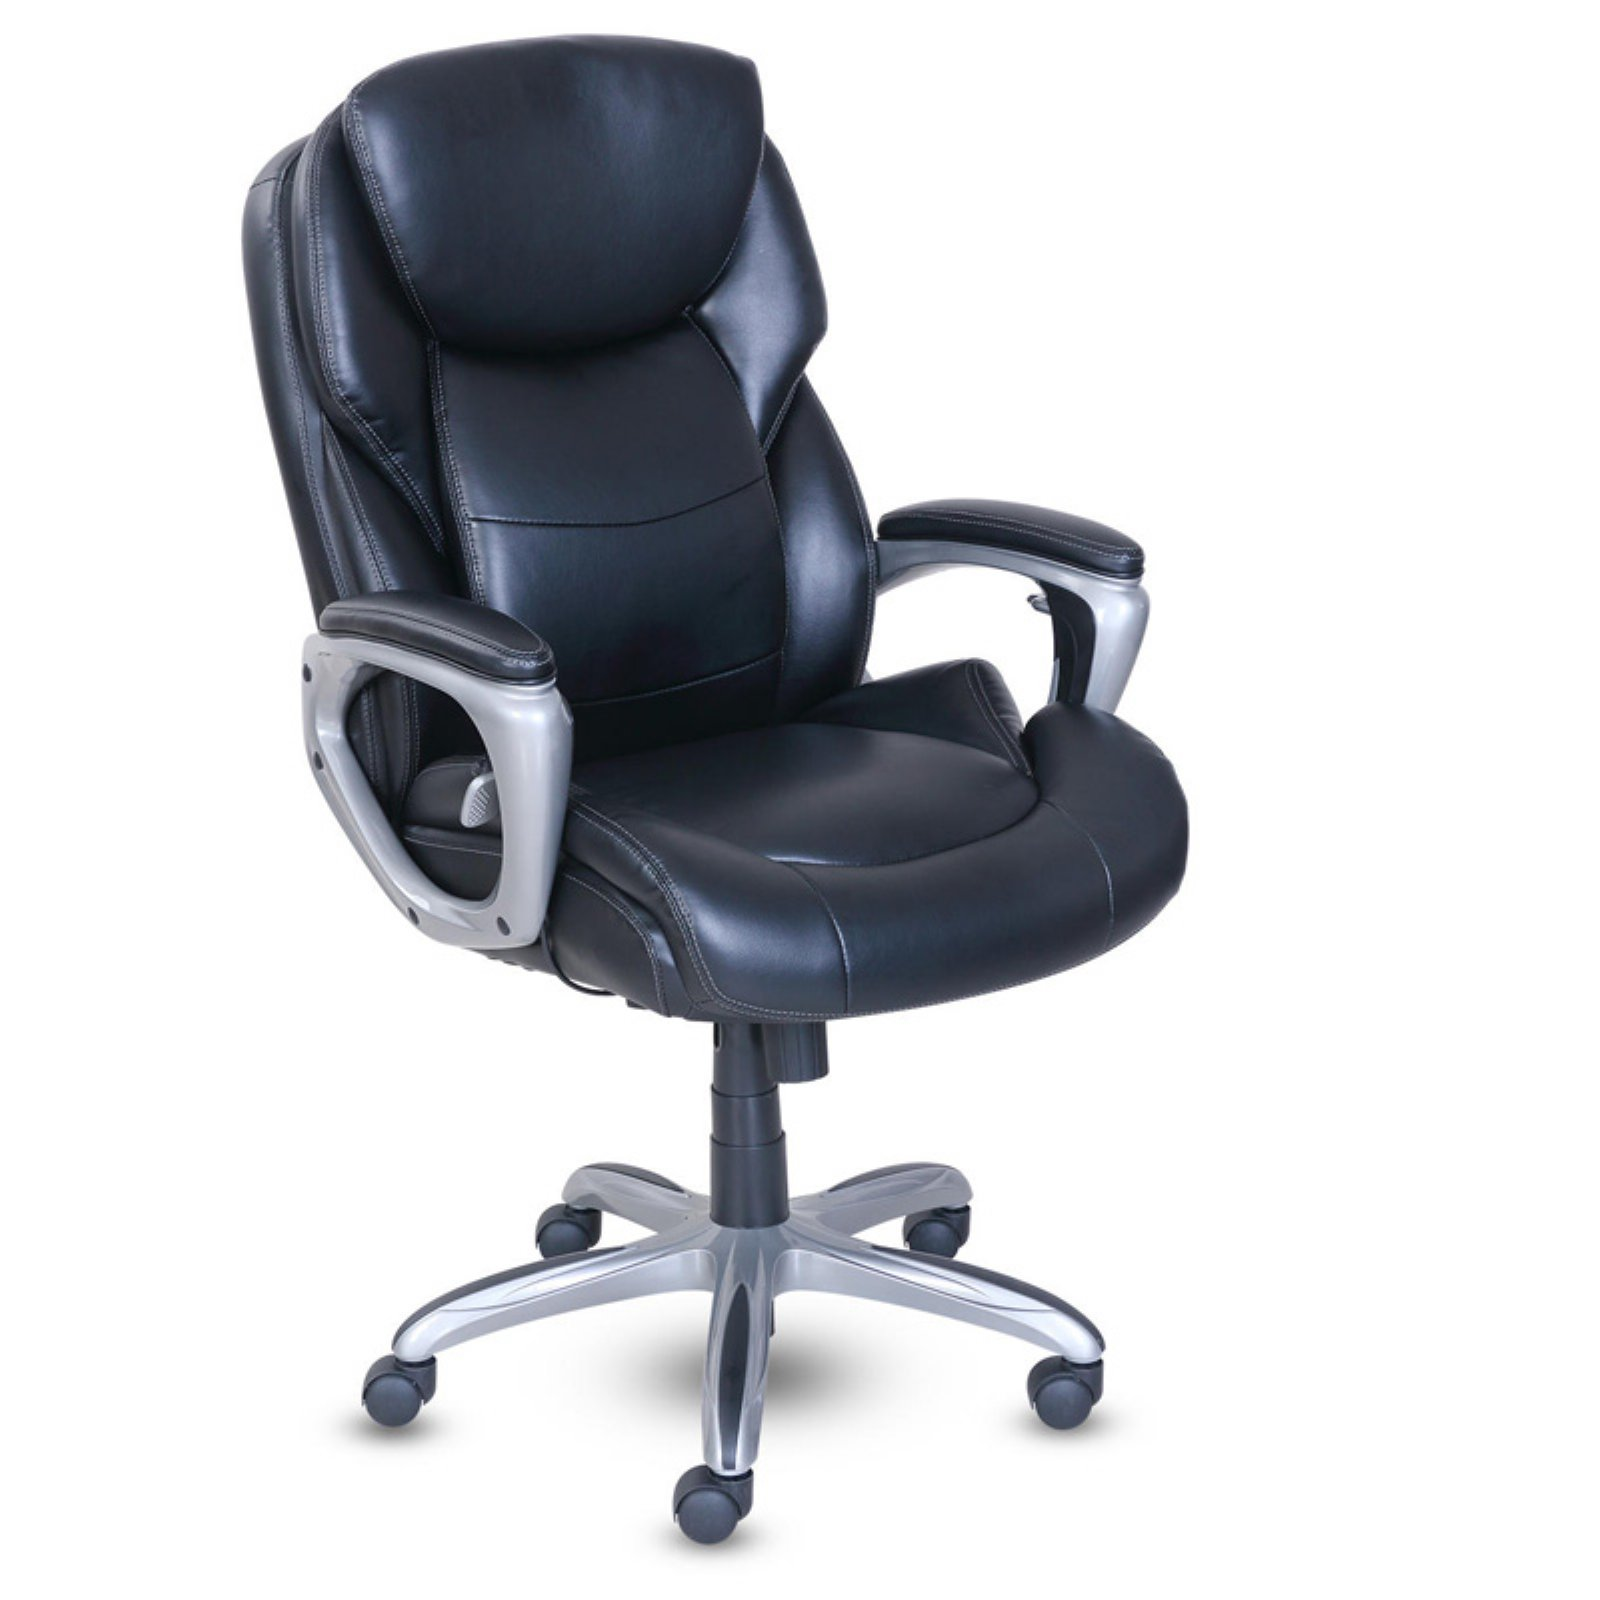 Serta My Fit Executive Office Chair with Active Lumbar Support - Walmart.com